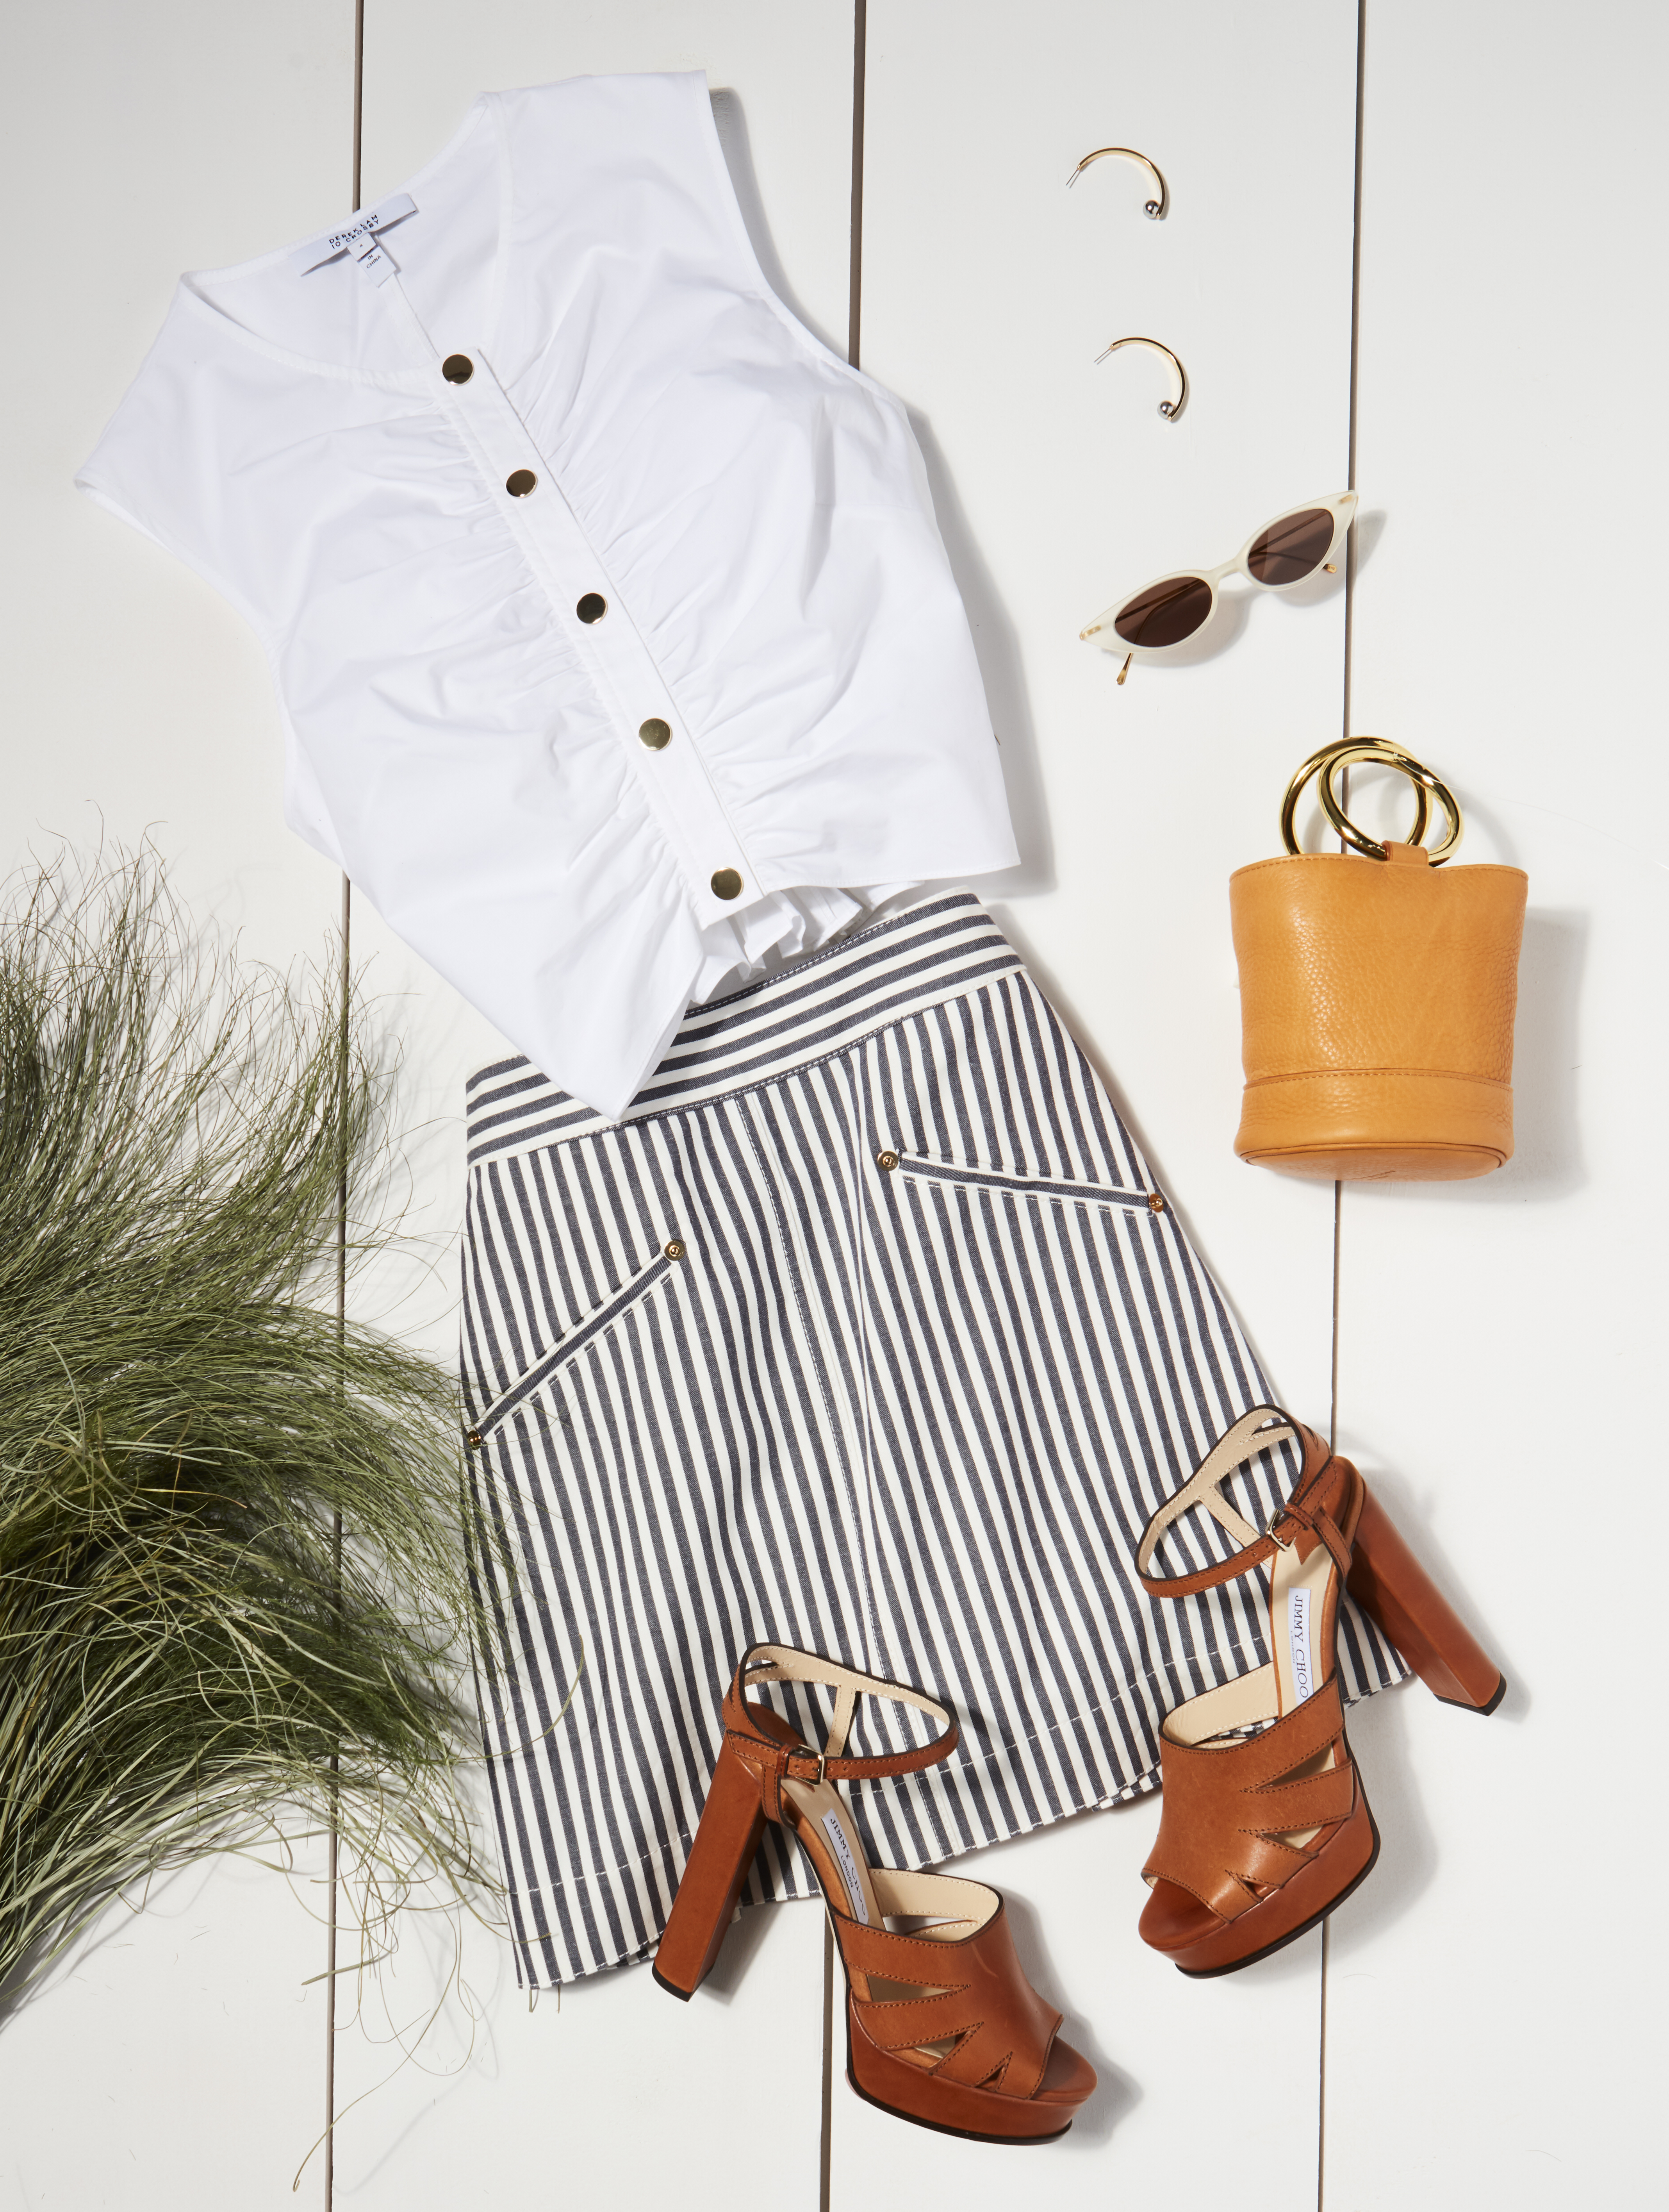 2ead319fc86 With a crisp silhouette and feminine details, the Ruched Crop Top is equal  parts polish and fun, making it a go-to you'll practically worship for its  ...